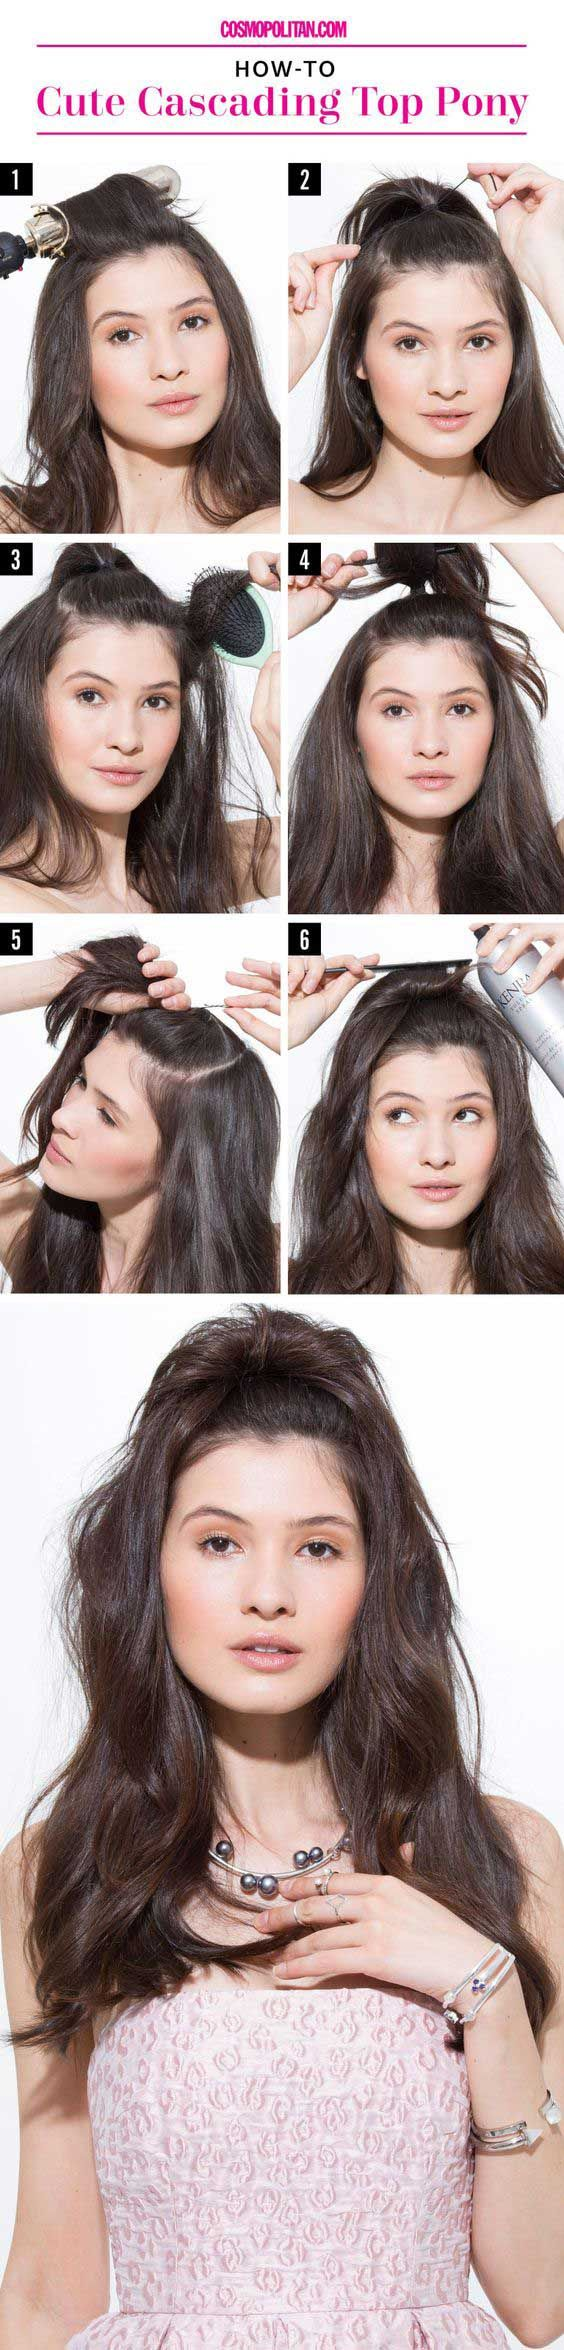 Easy Hairstyles On The Go Best 25 Ponytail Tutorial Ideas Only On Pinterest Pony Tails